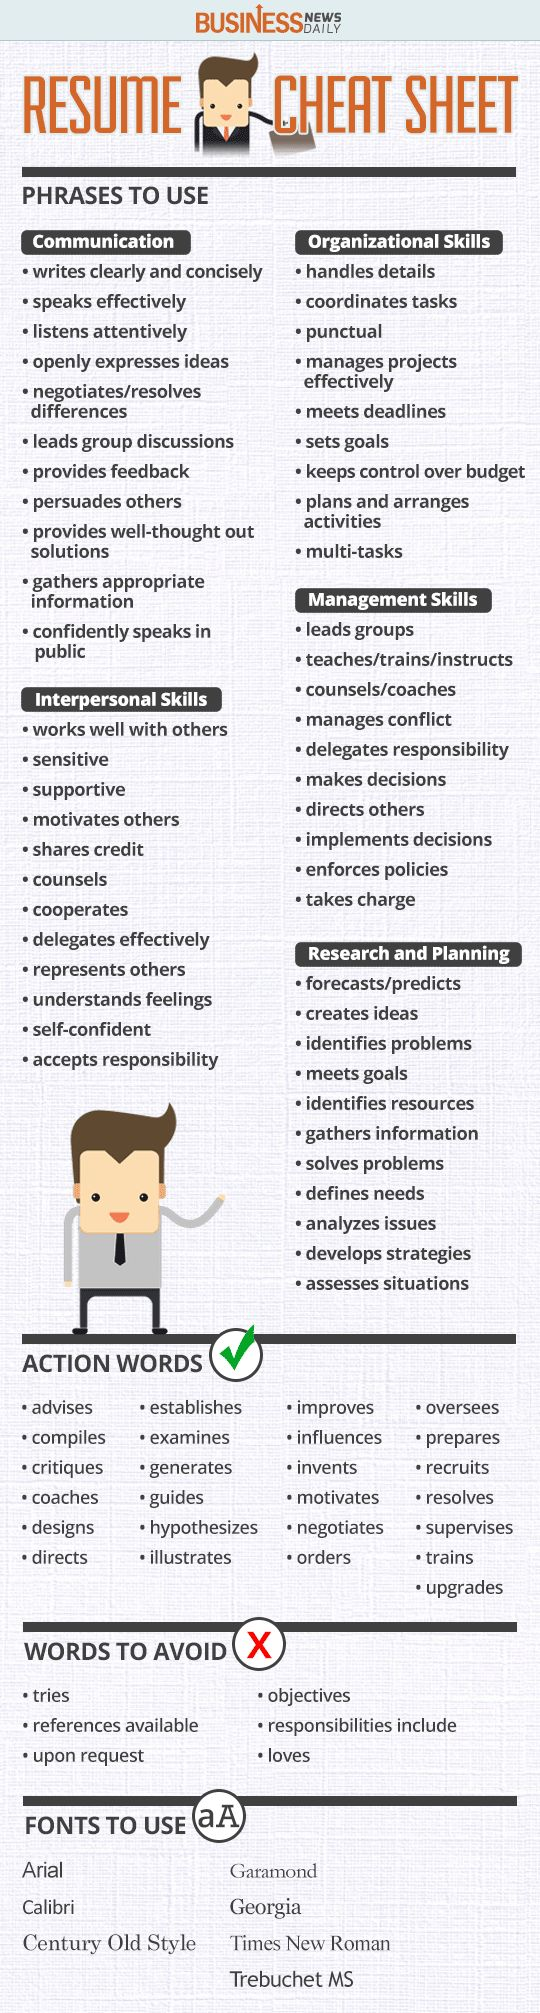 Opposenewapstandardsus  Surprising  Ideas About Resume On Pinterest  Cv Format Resume Cv And  With Great Resume Cheat Sheet Infographic Andrews Almost Done With A Complete Unit On Employment Which With Amusing Best Skills To Put On A Resume Also Inventory Resume In Addition Resume Accounting And General Resume Template As Well As Your Resume Additionally Hobbies For Resume From Pinterestcom With Opposenewapstandardsus  Great  Ideas About Resume On Pinterest  Cv Format Resume Cv And  With Amusing Resume Cheat Sheet Infographic Andrews Almost Done With A Complete Unit On Employment Which And Surprising Best Skills To Put On A Resume Also Inventory Resume In Addition Resume Accounting From Pinterestcom